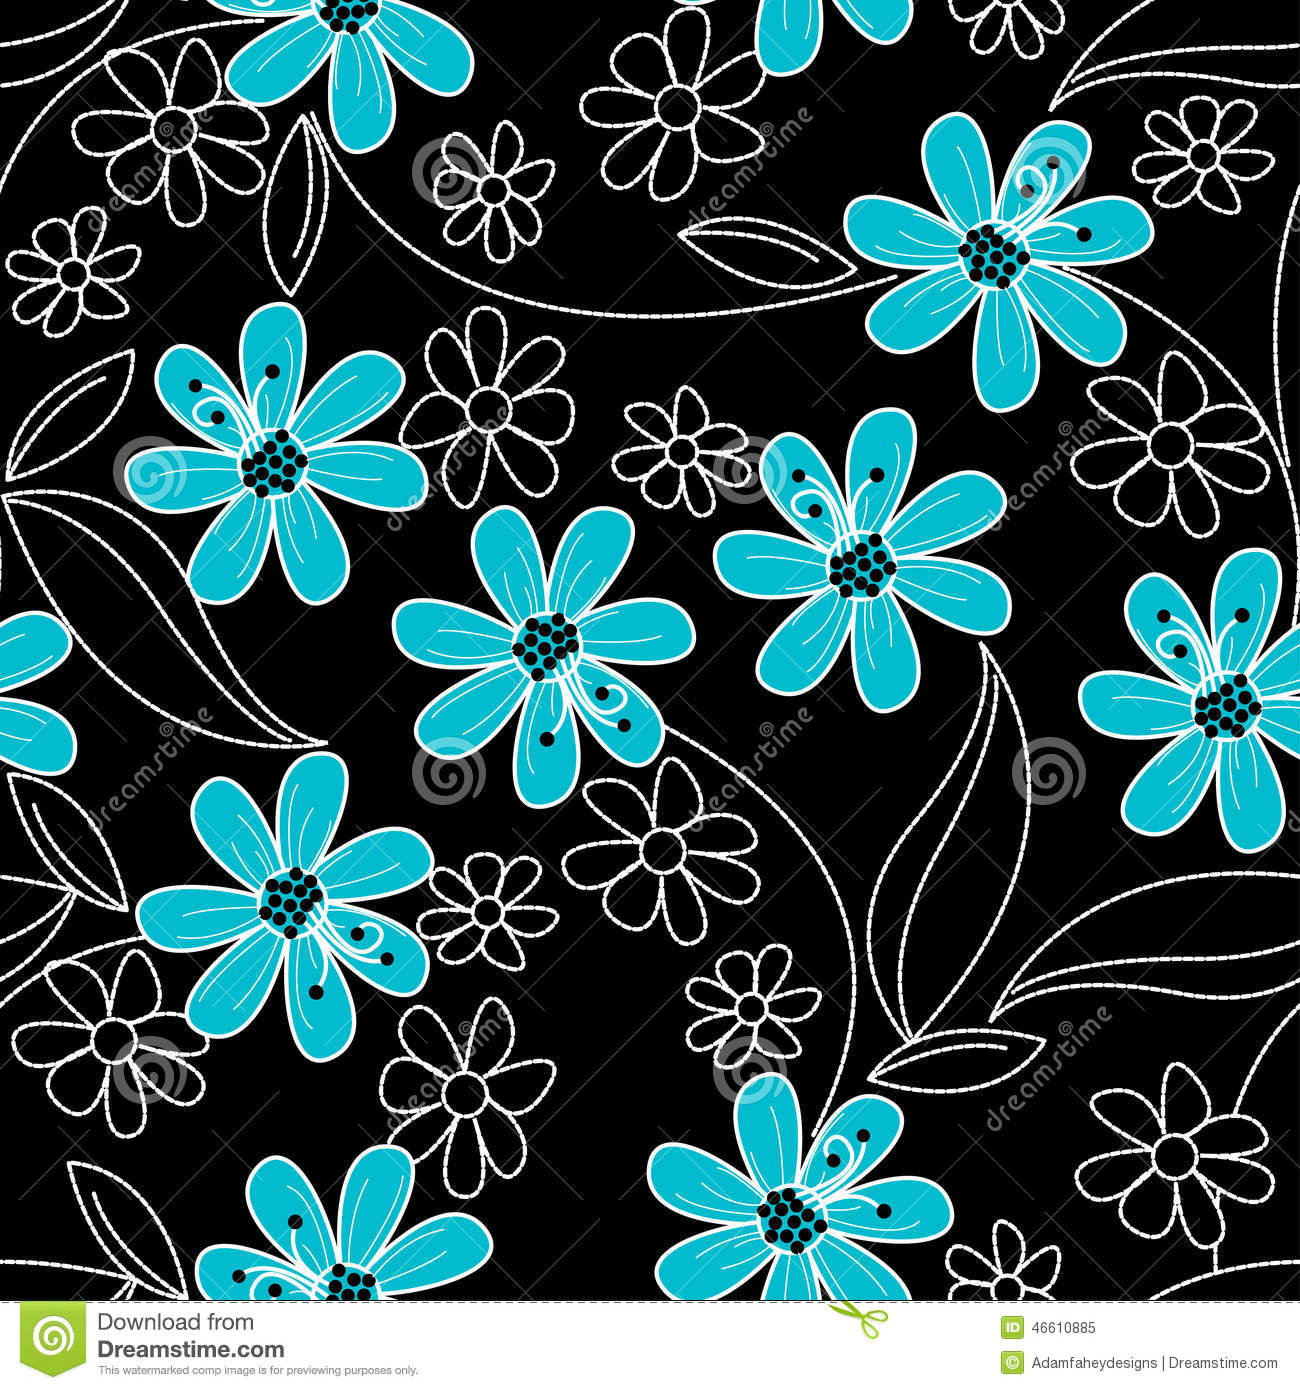 Light Blue Flowers On Black And White Embroidery In A